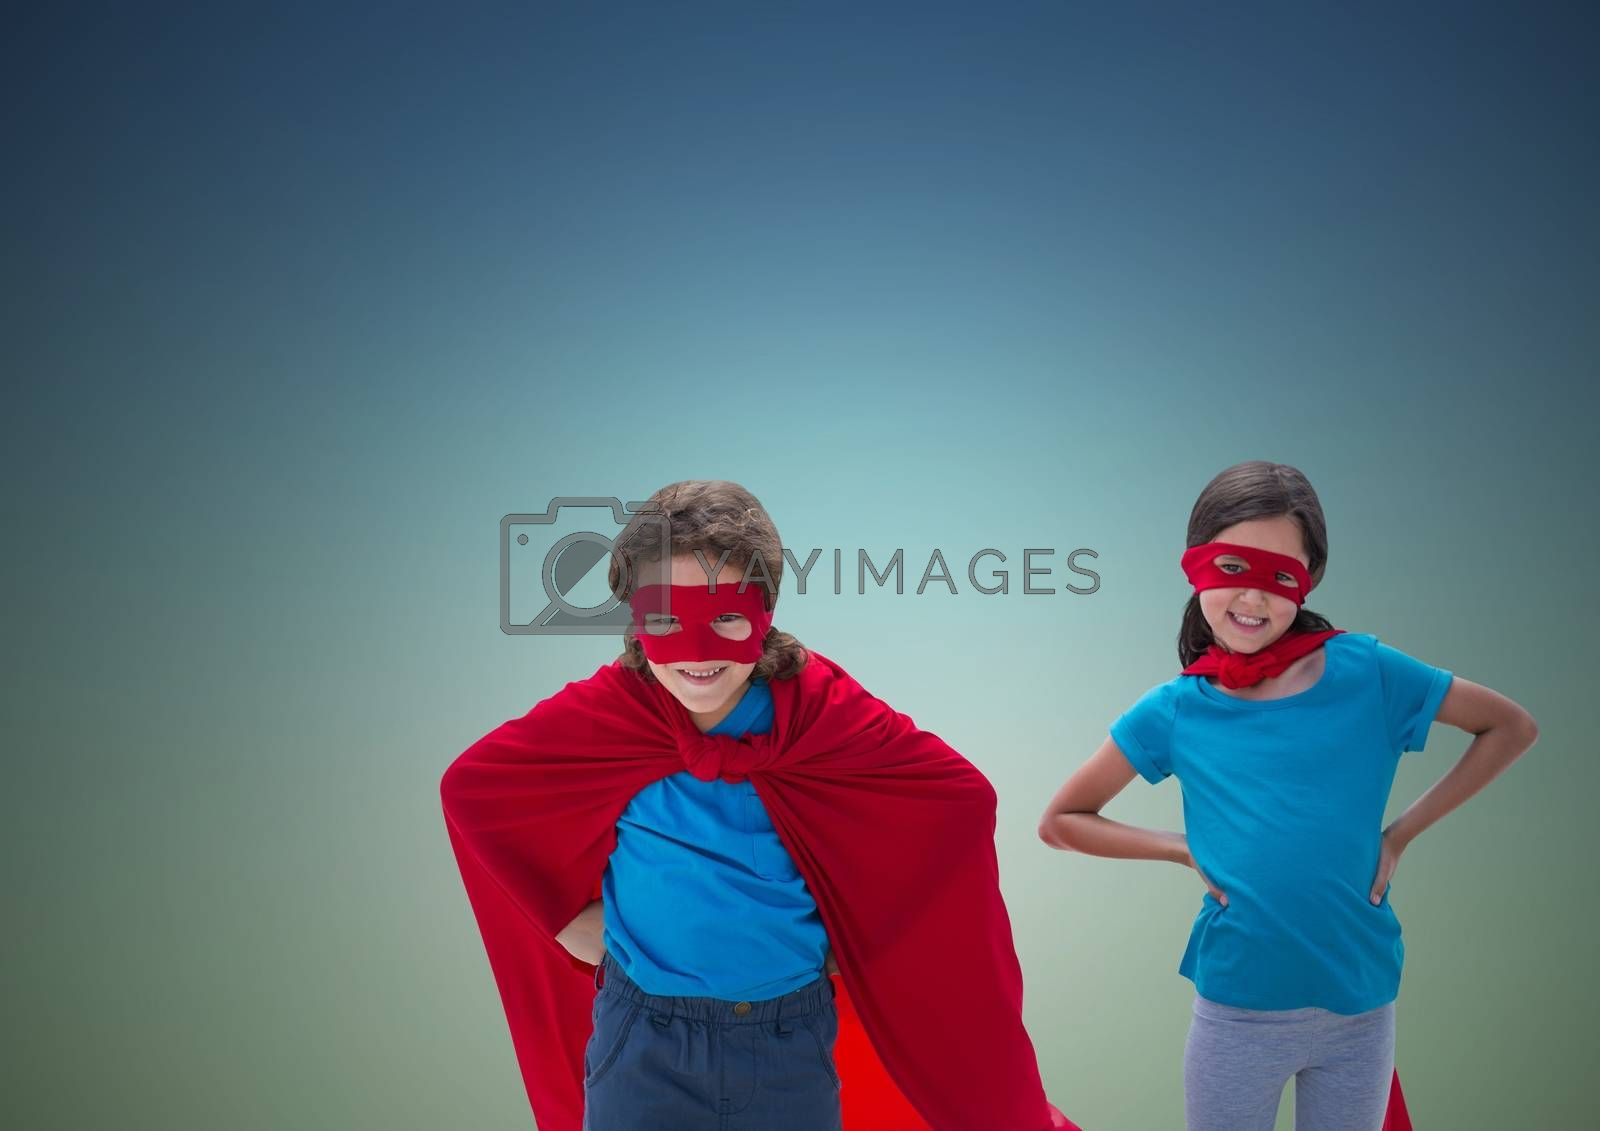 Two children wearing superhero costume standing with hands on hip against blue background